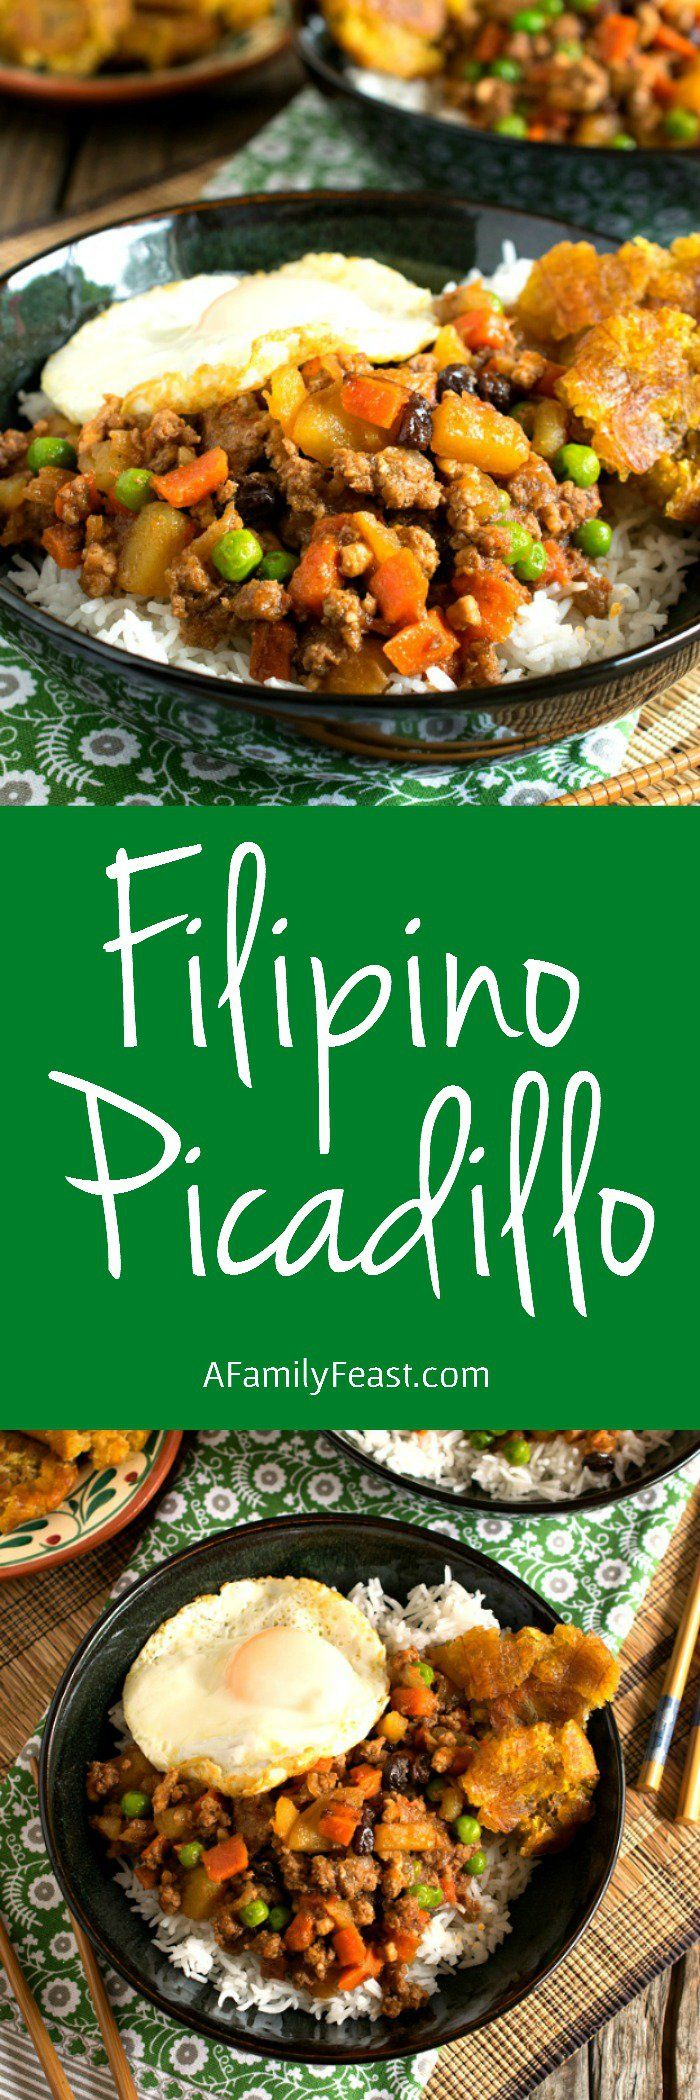 Filipino Picadillo - A delicious, one-skillet dinner made with ground beef, potatoes, raisins and vegetables in flavorful sauce.